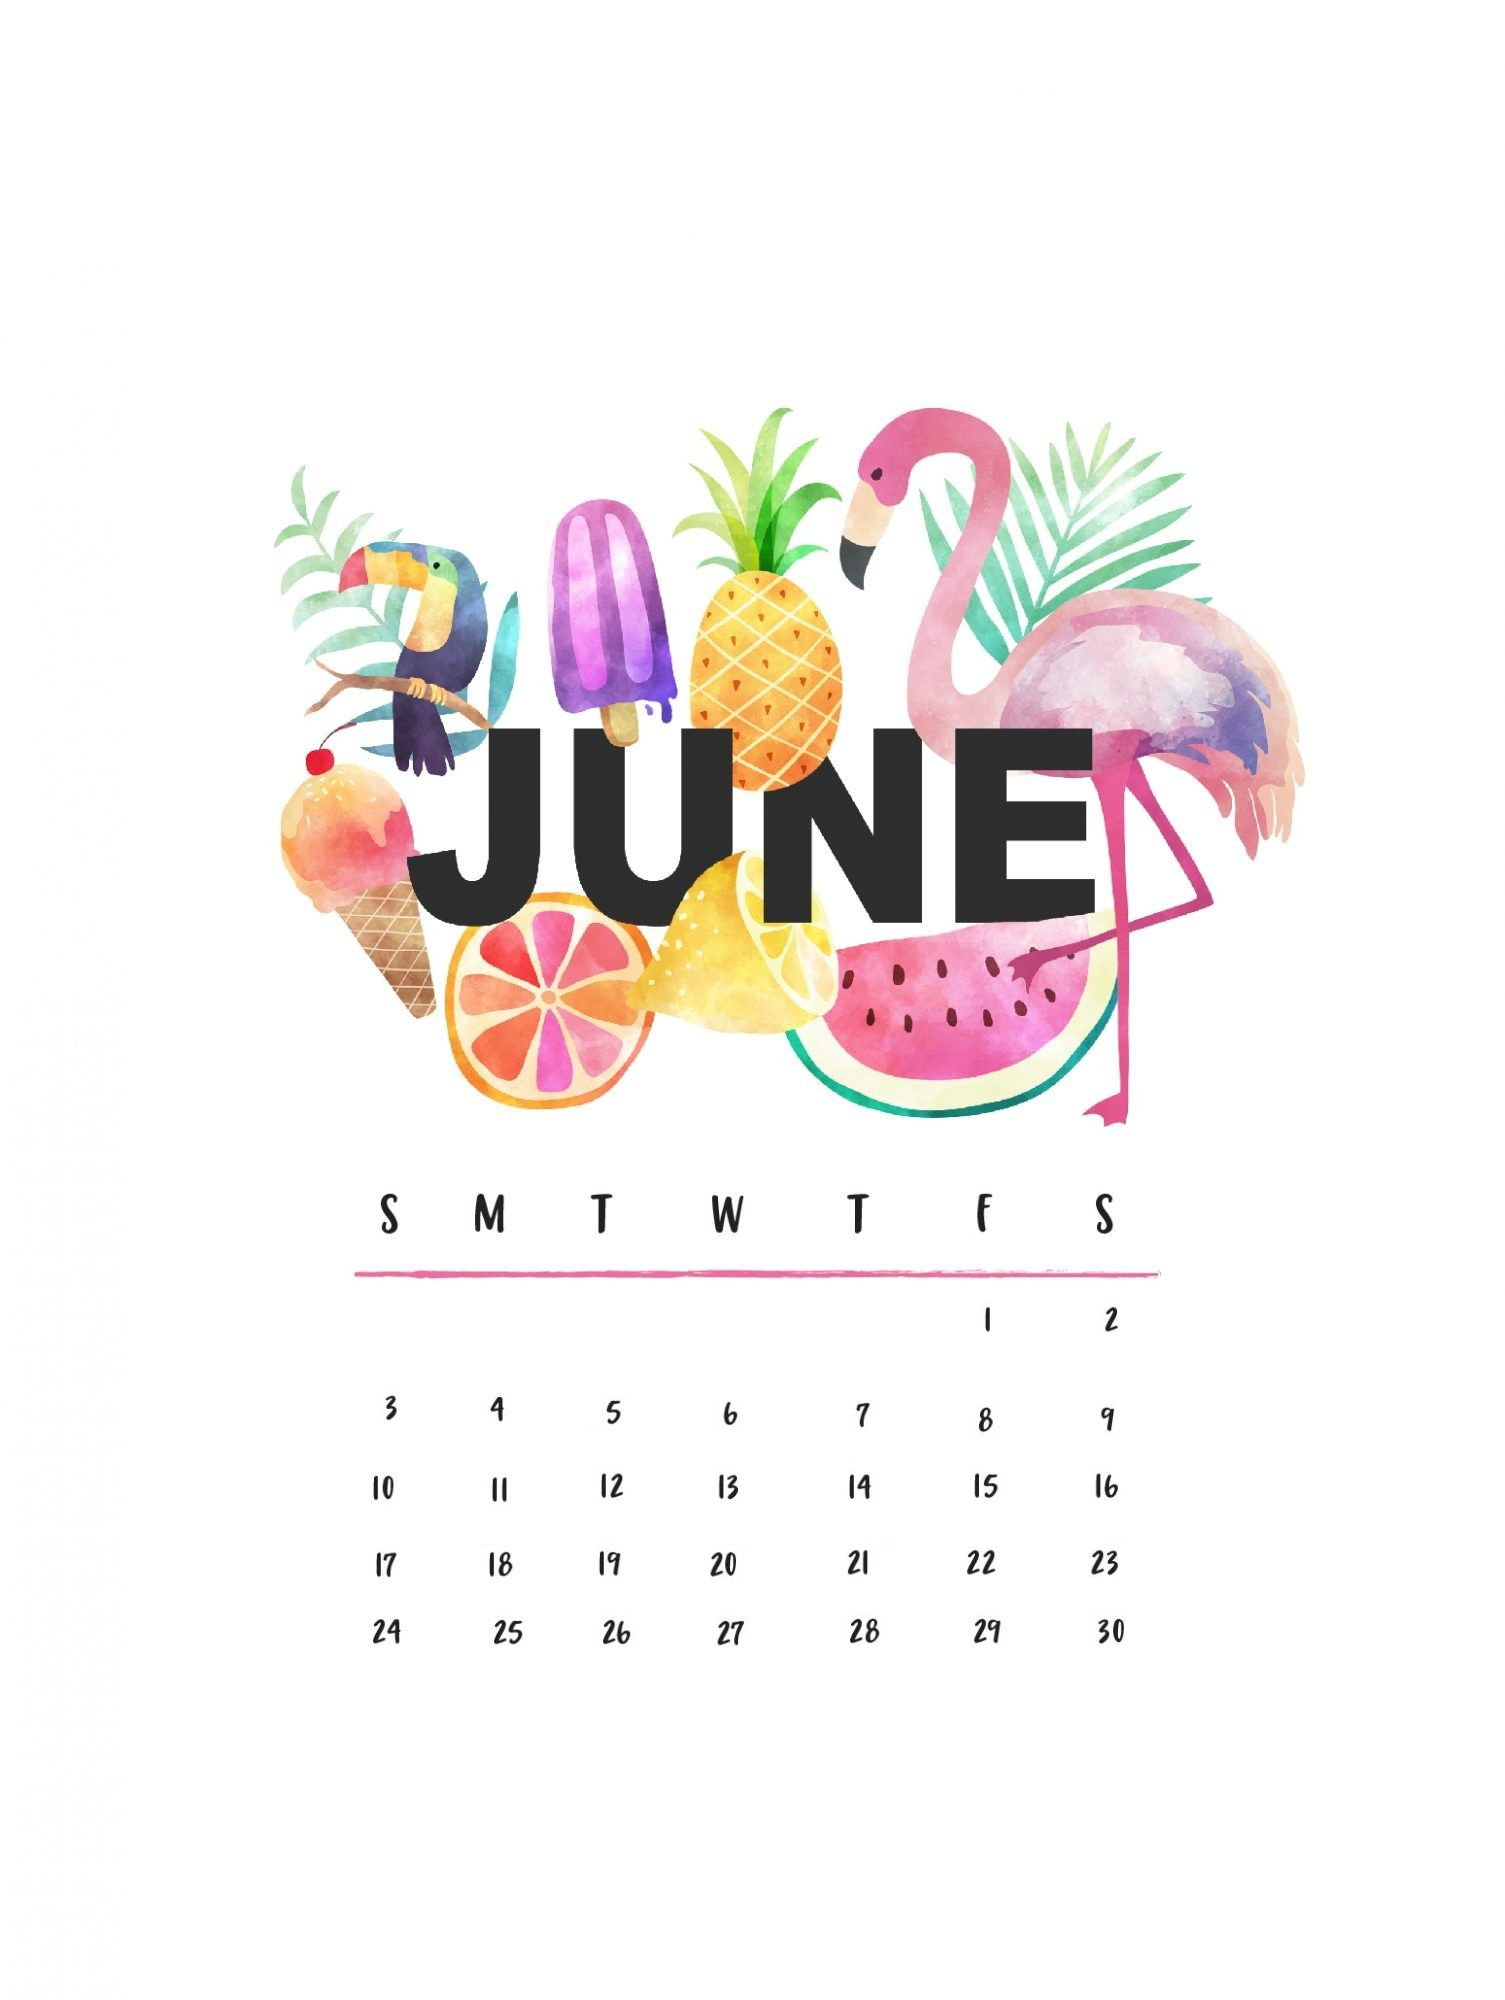 Beautiful June 2018 iPhone Calendar Wallpapers Calendar 2018 1505x2000